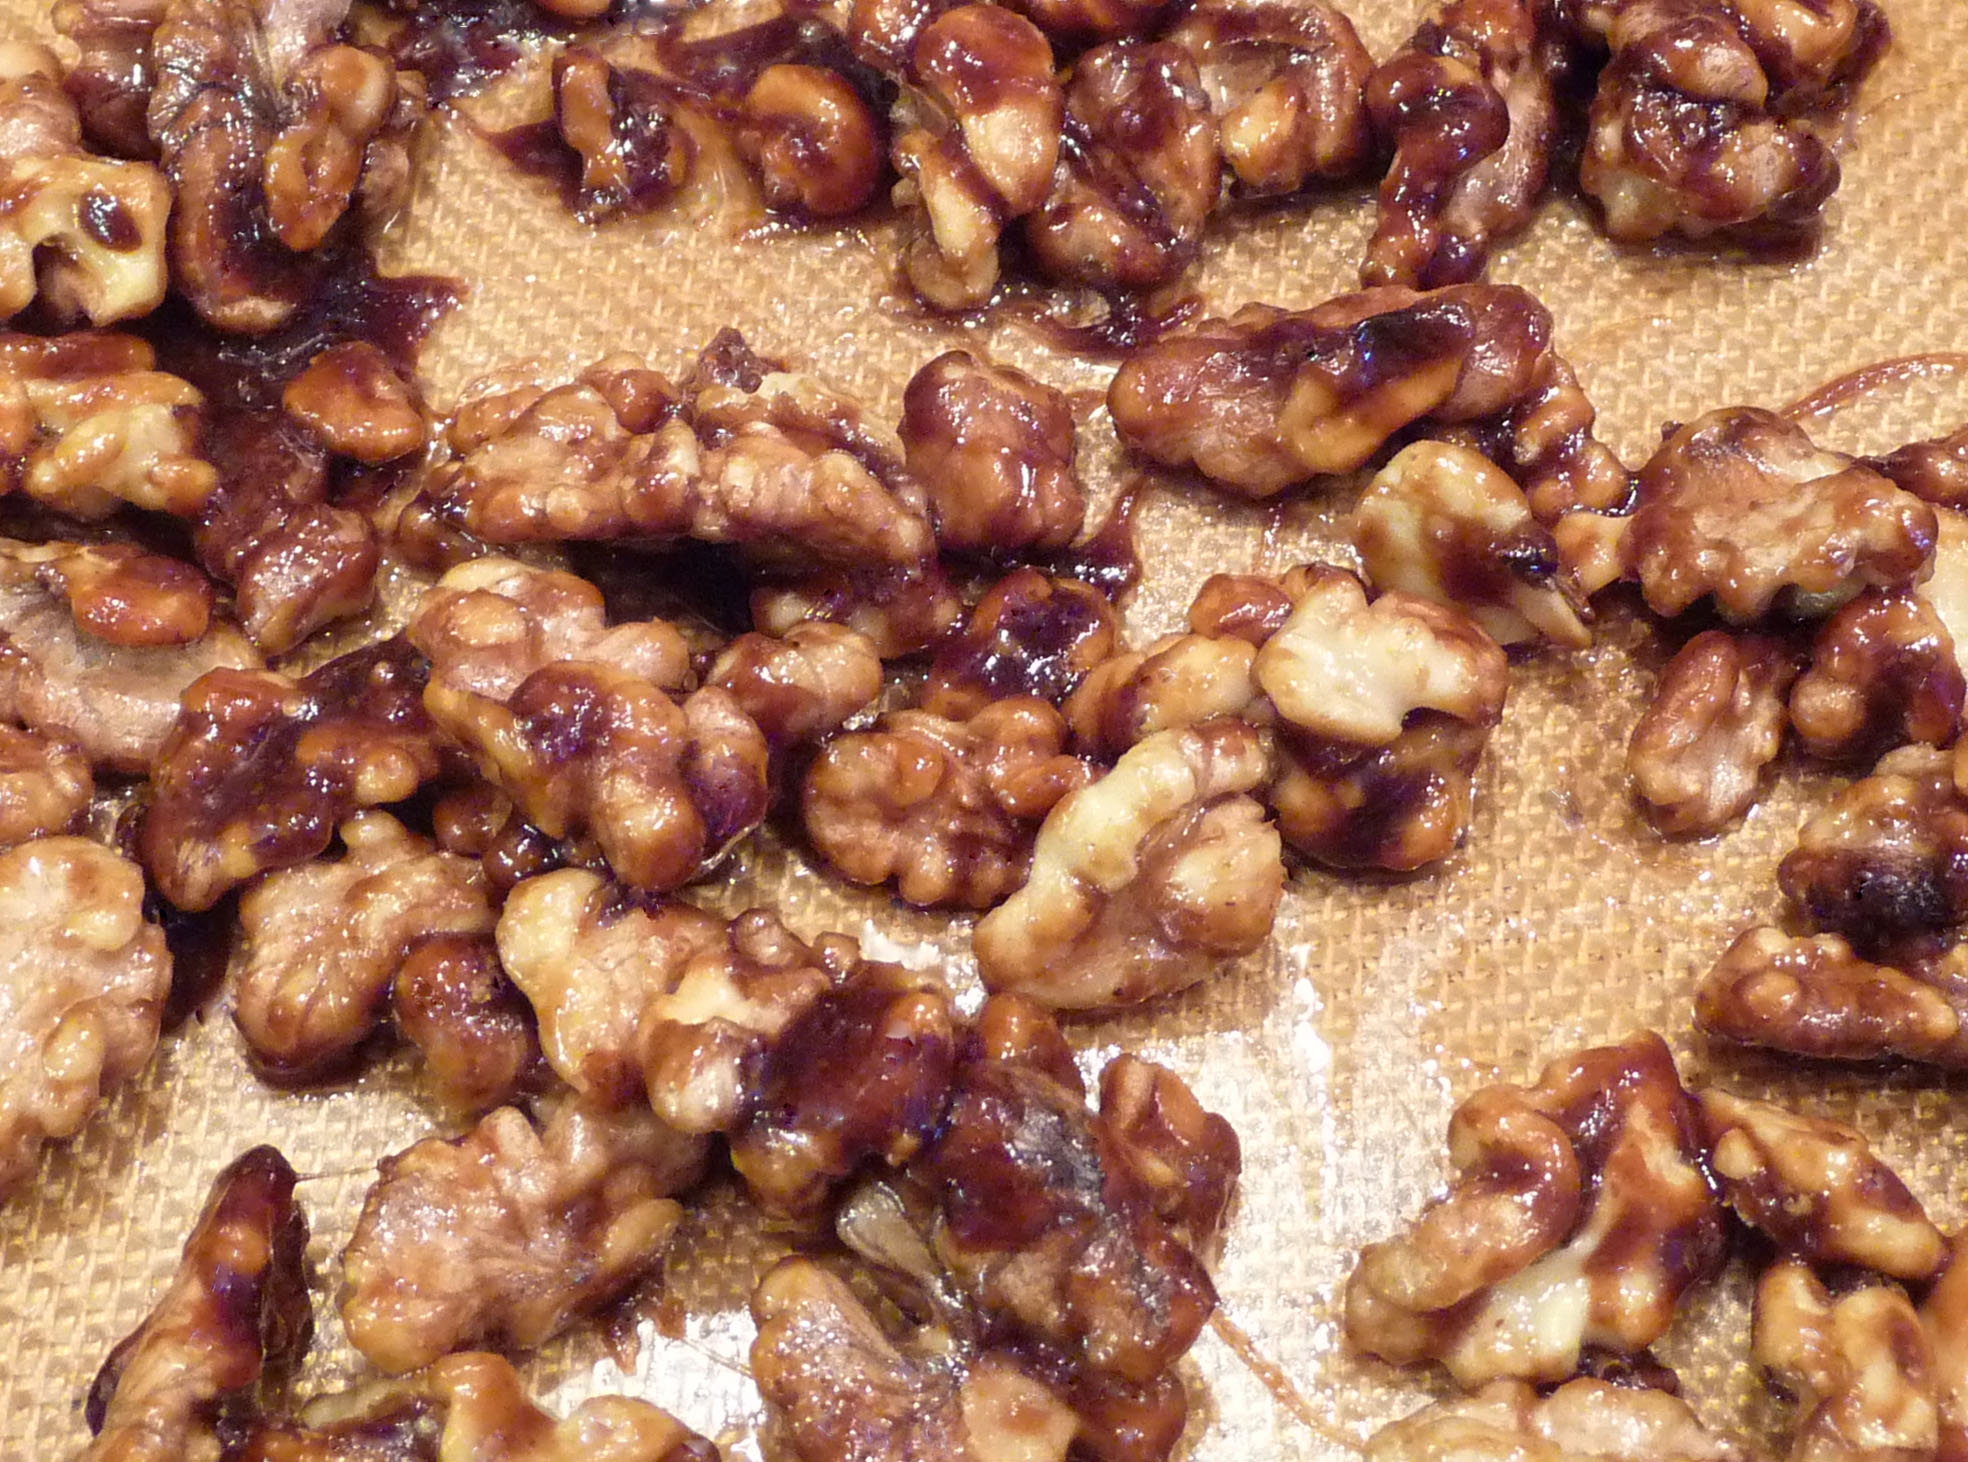 Maple-Glazed Walnuts (c) jfhaugen